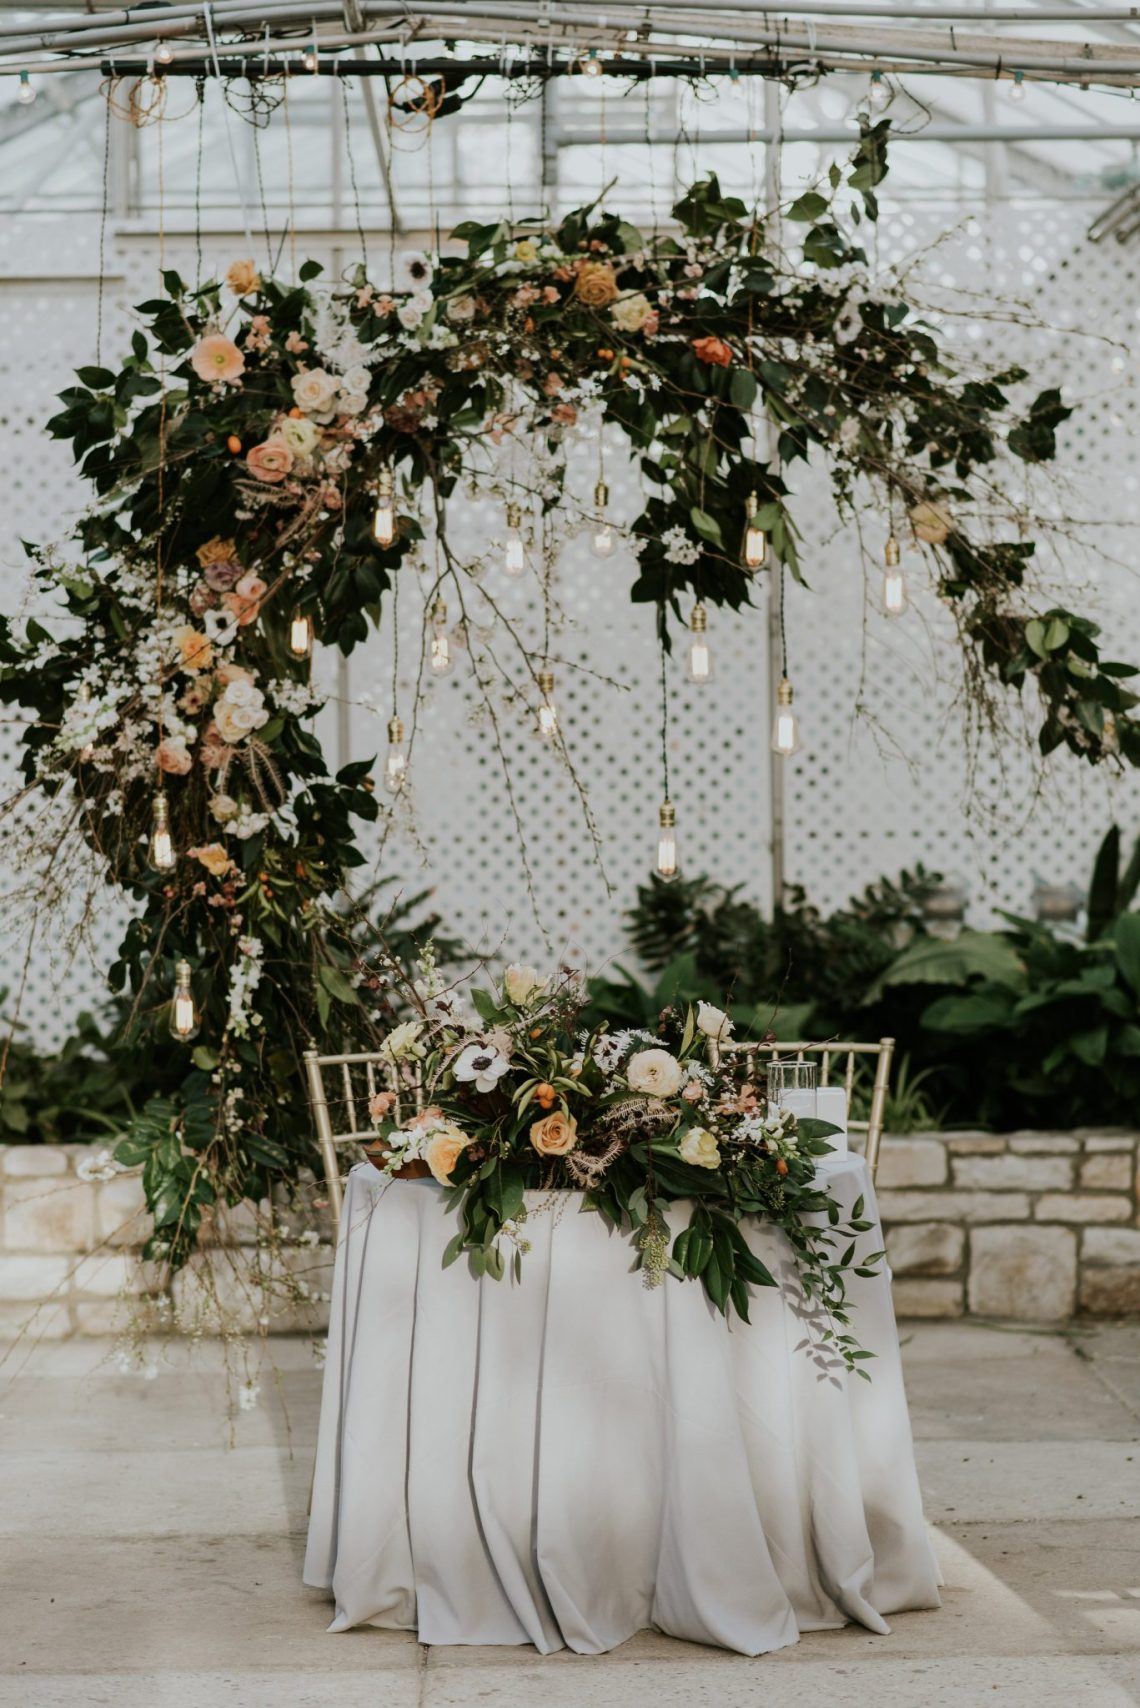 A stunning sweetheart table designed by Sullivan Owen at the Horticulture Center in Philadelphia. | www.thestyledbride.com